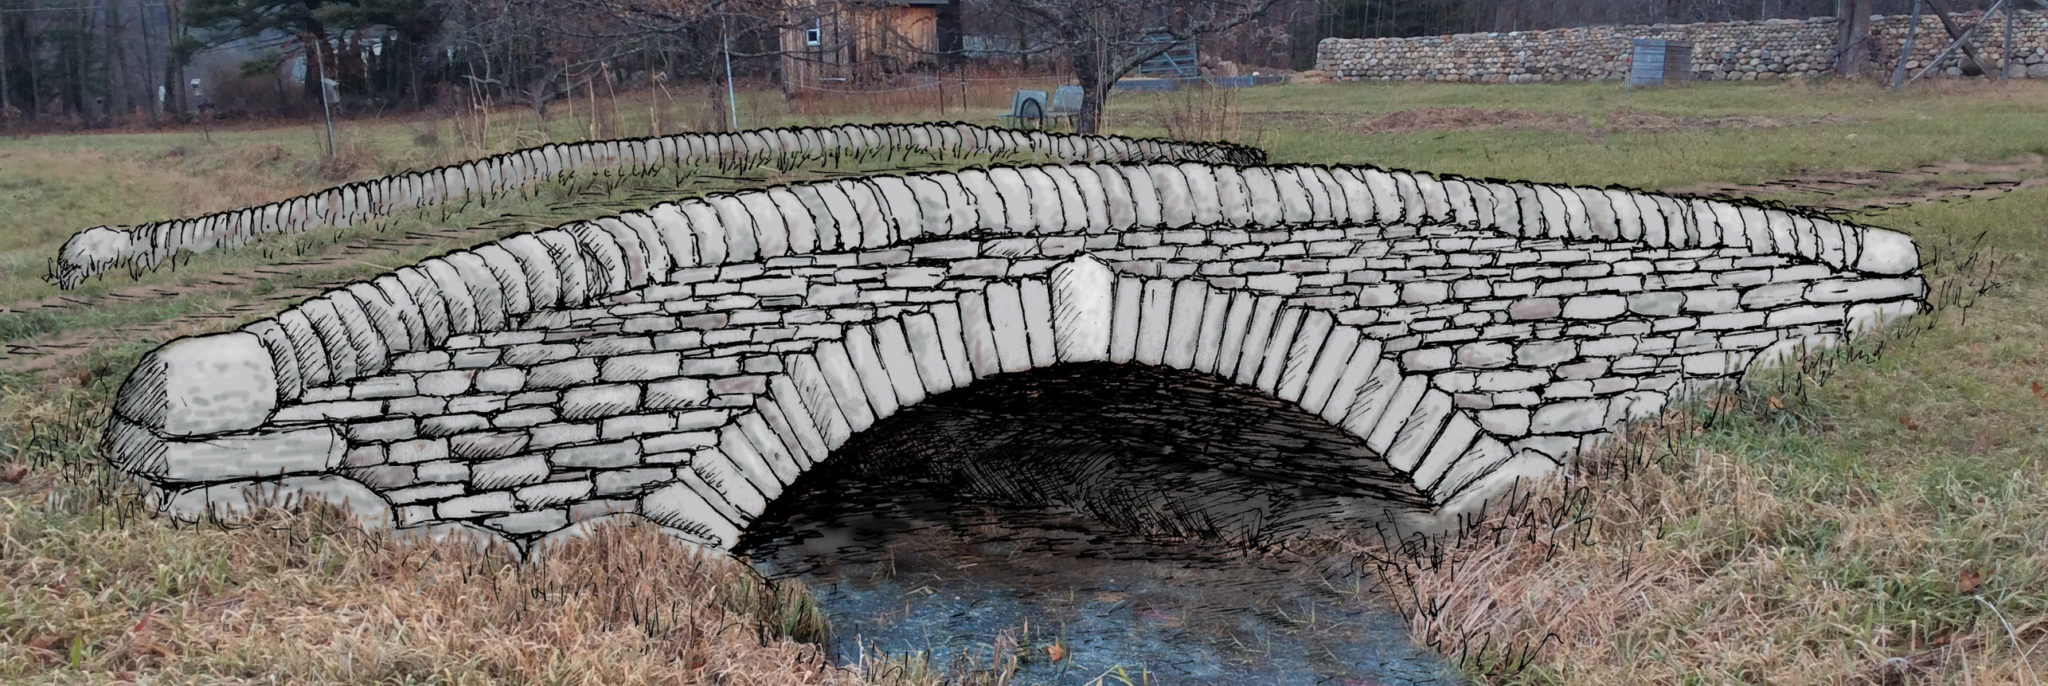 Learn To Build A Dry Stone Arched Bridge This Work Will Culminate The Building Series With Two Day Of Our Farm Road